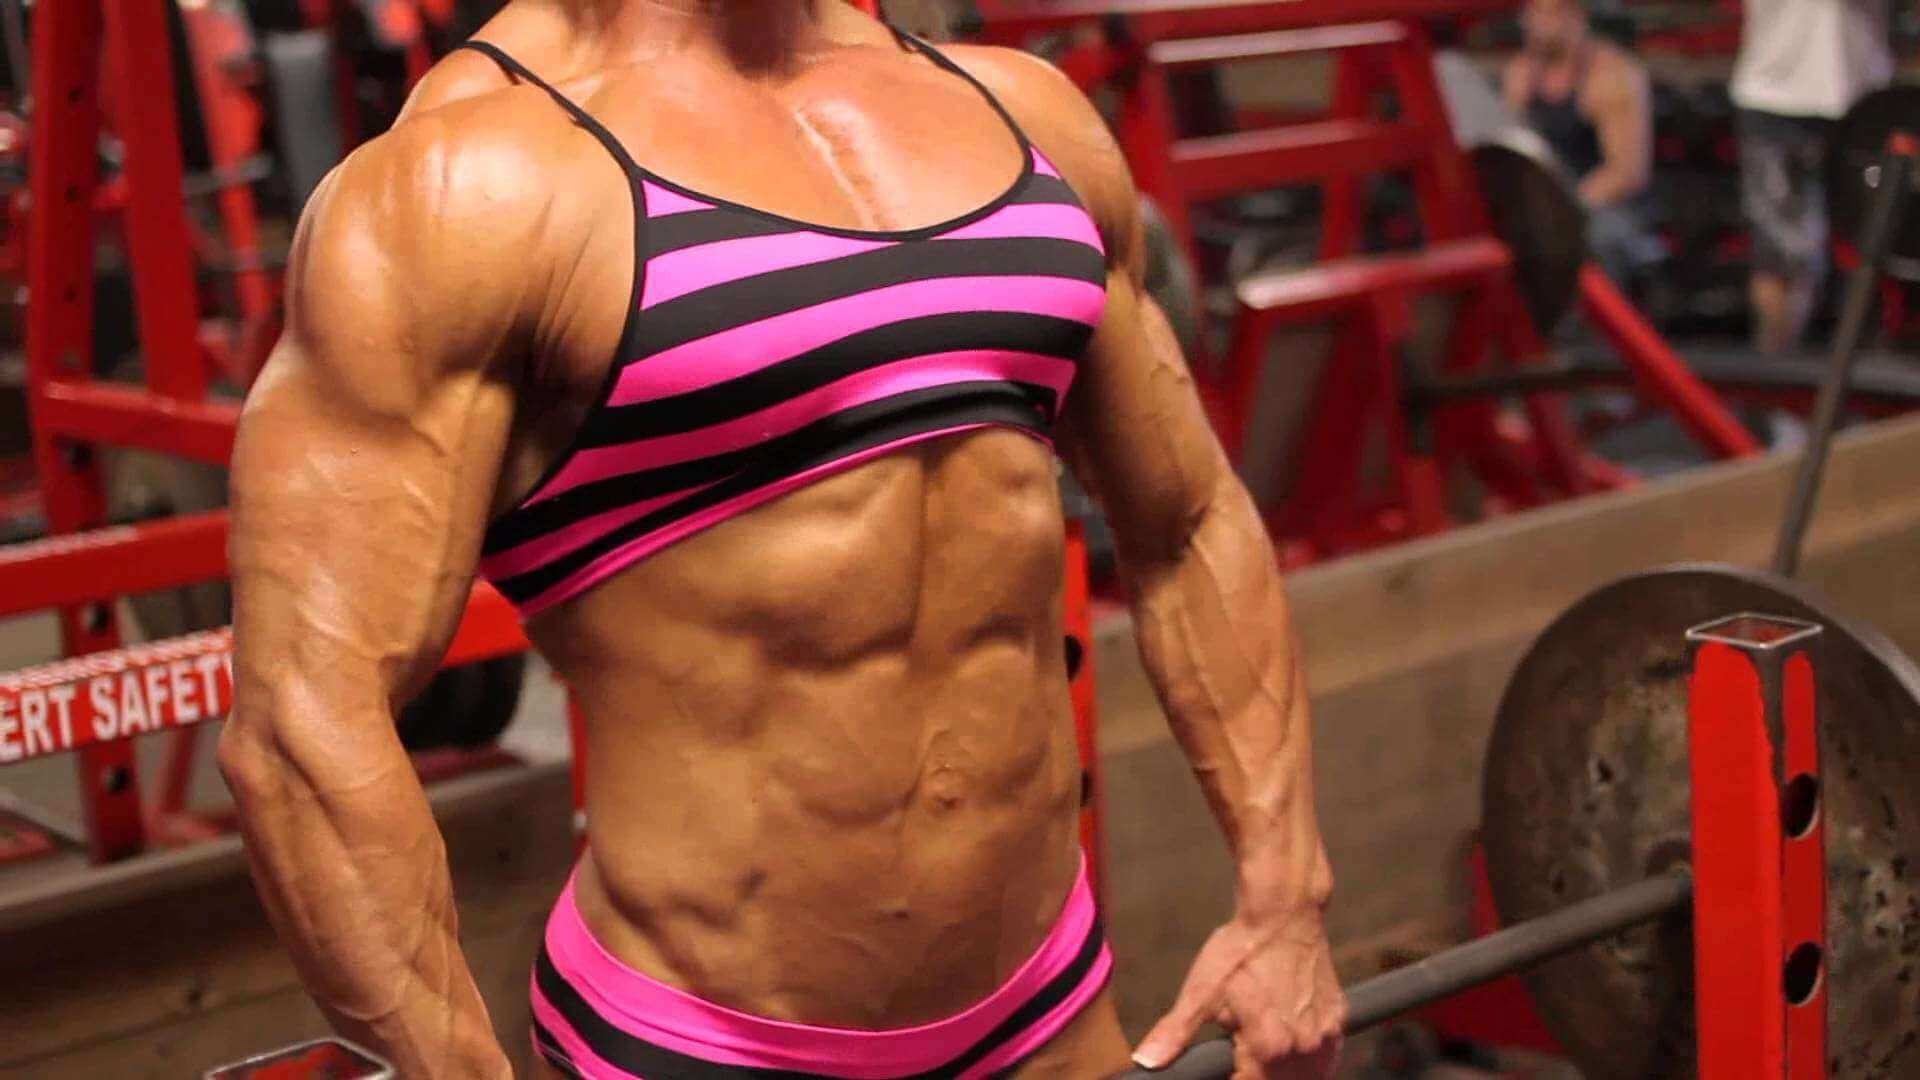 anabolic steroids abuse facts